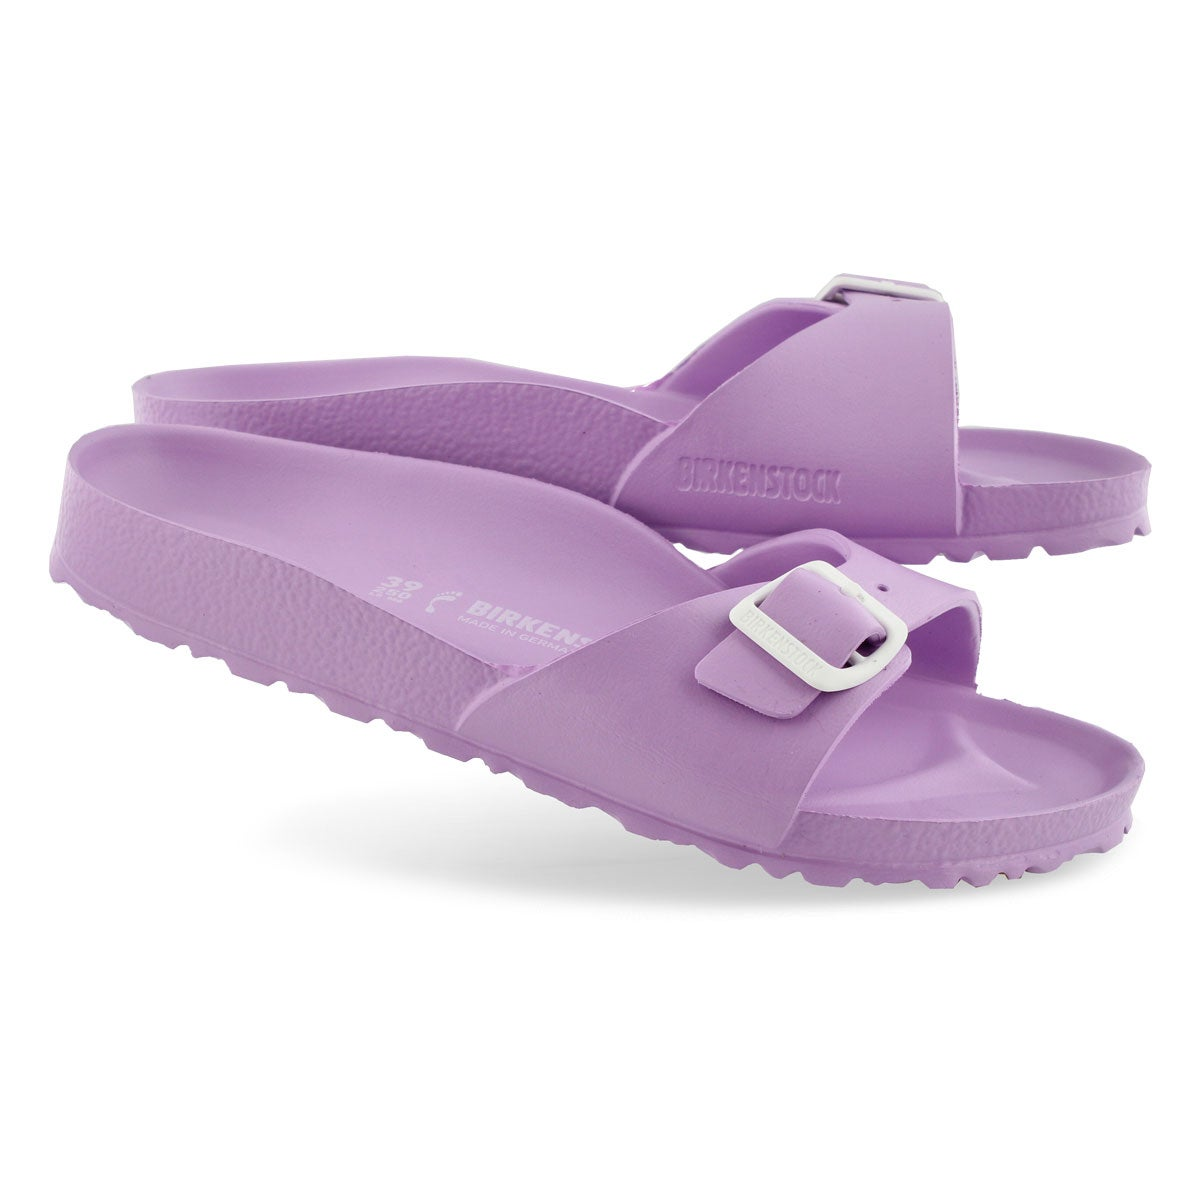 Lds Madrid lvn EVA slide sandal - Narrow